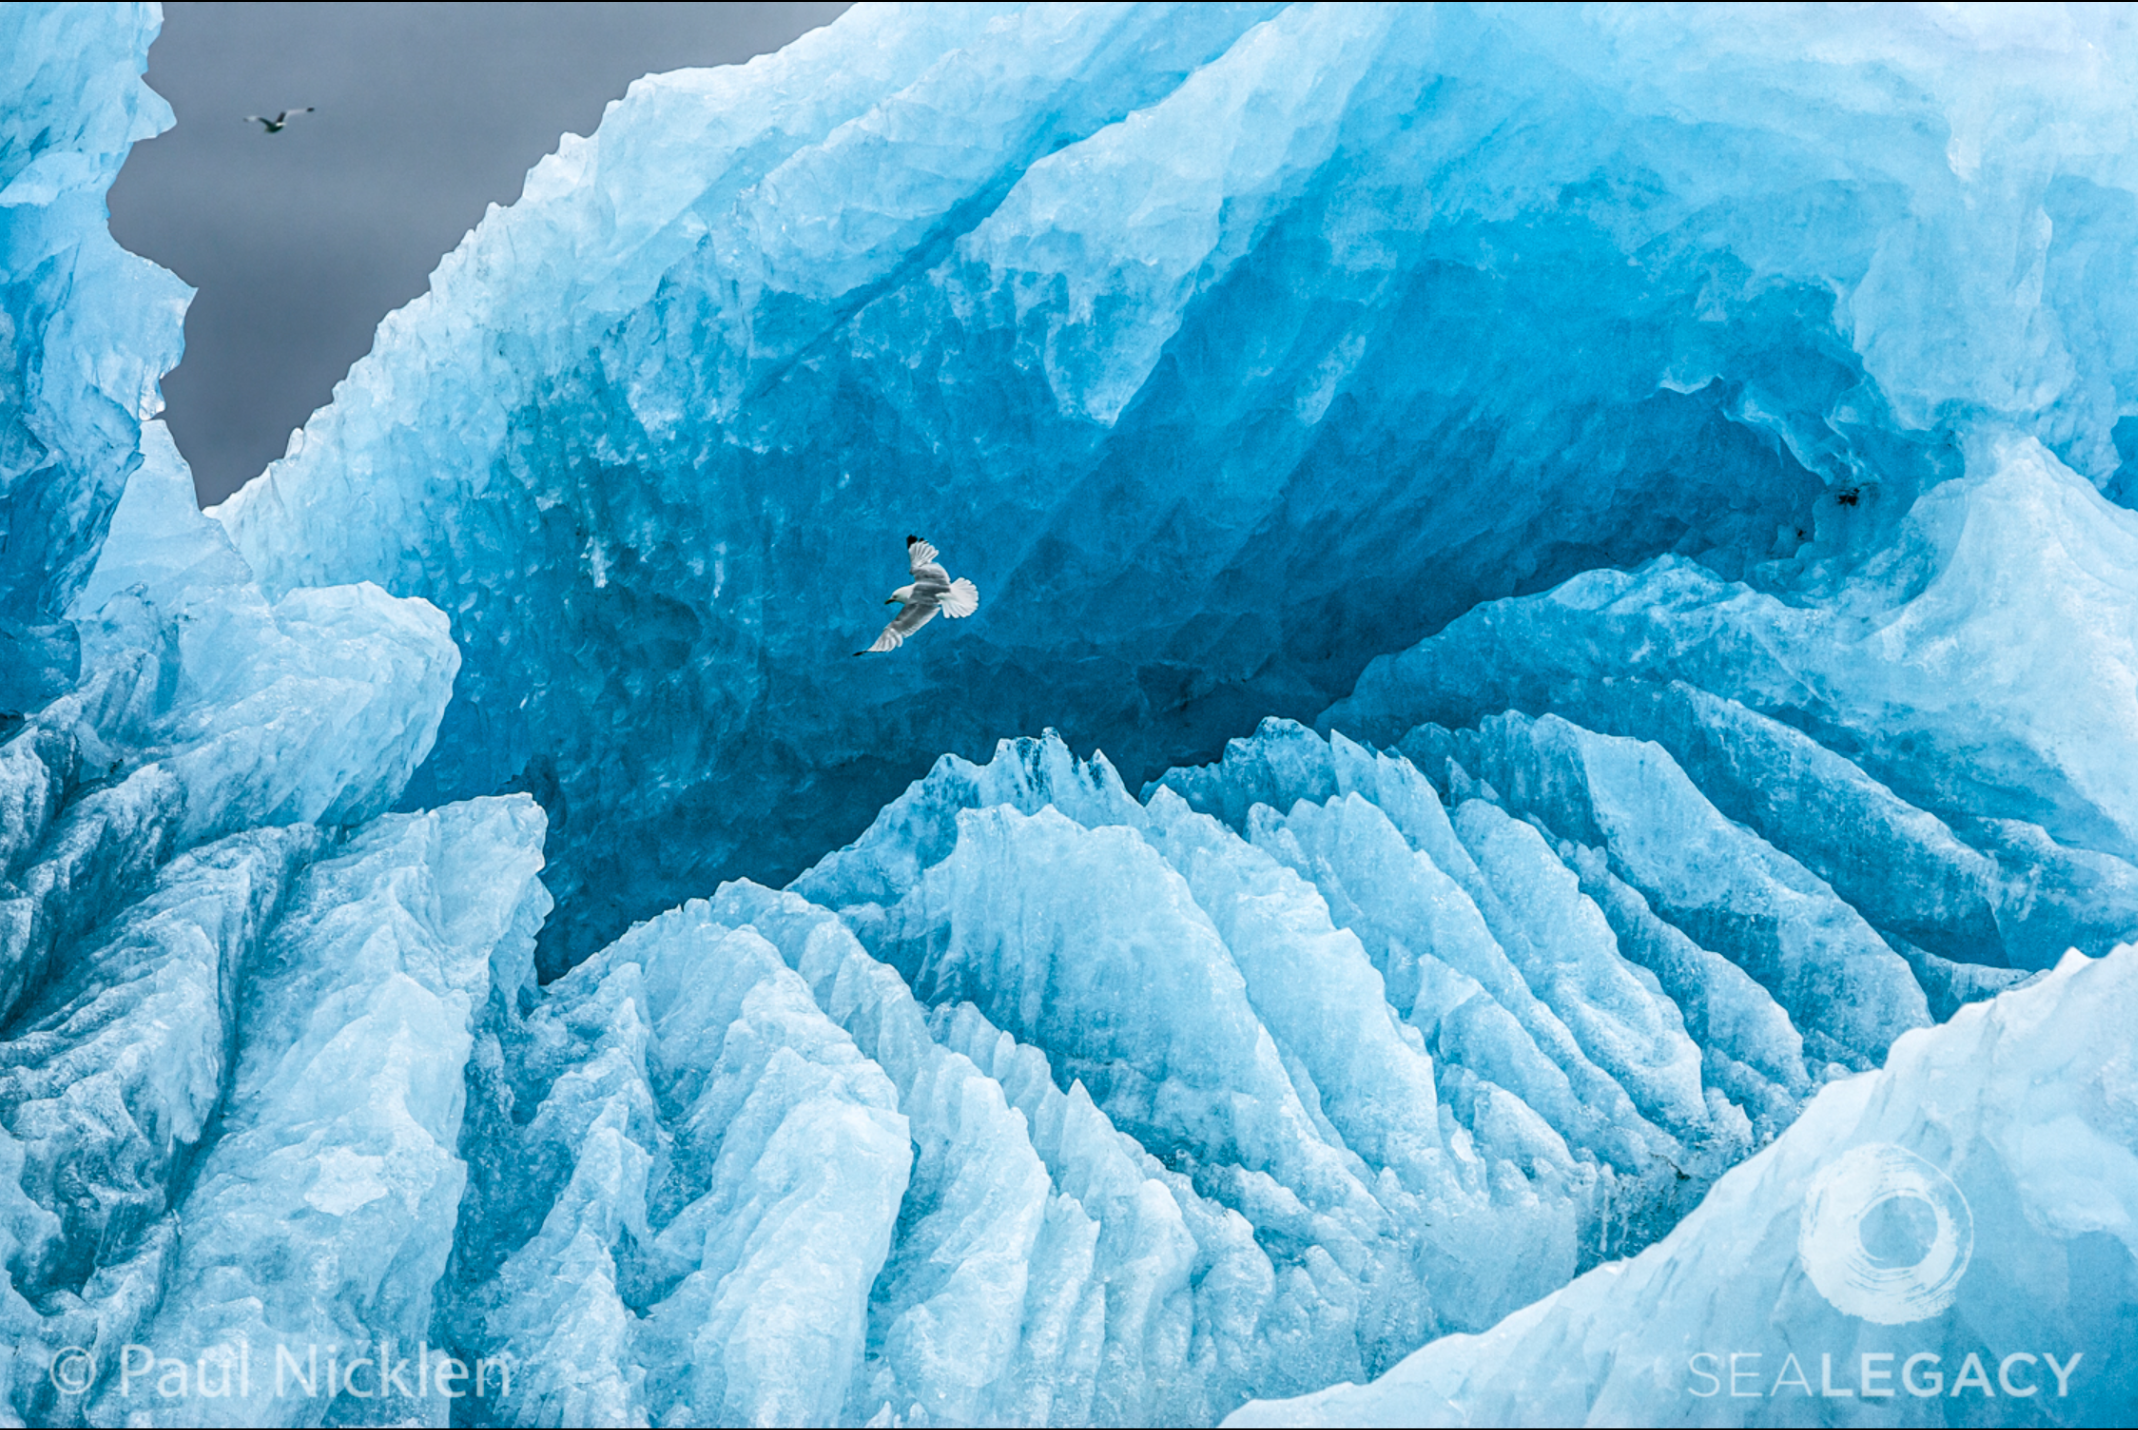 Paul Nicklen, Kittiwake  Digital Chromogenic Print, 20x30 in.